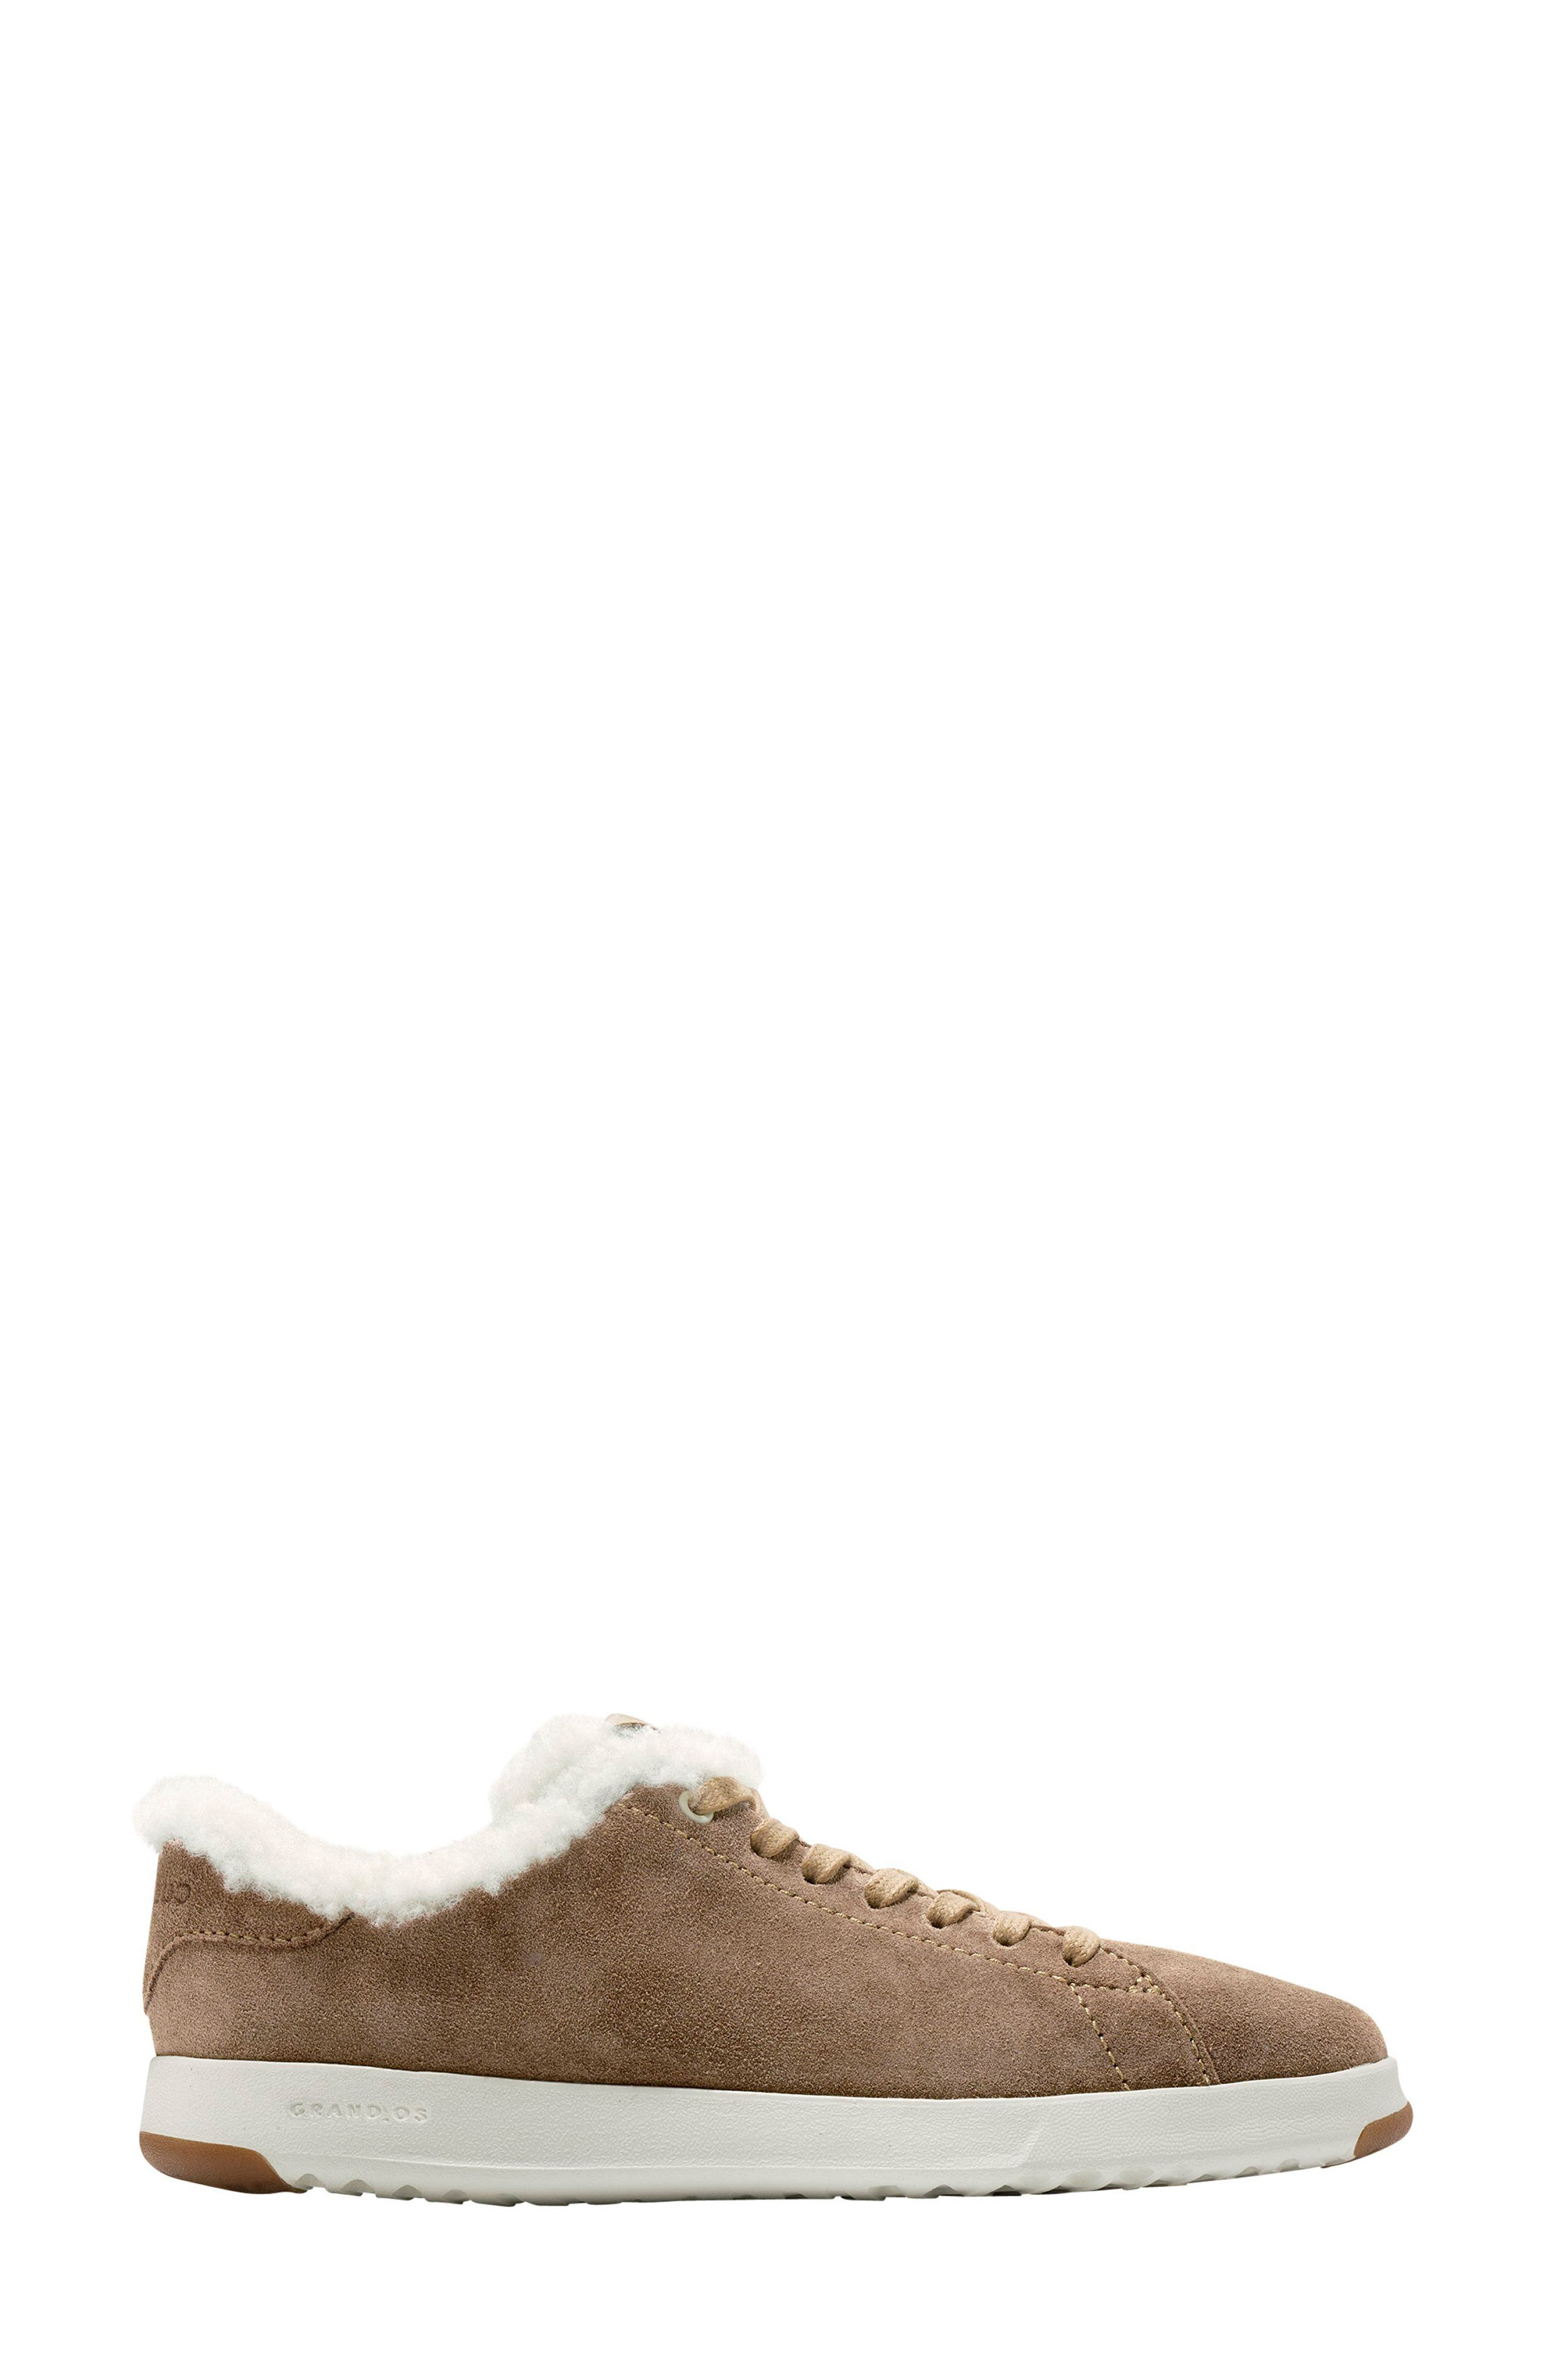 GrandPro Tennis Shoe,                             Alternate thumbnail 3, color,                             Warm Sand Suede